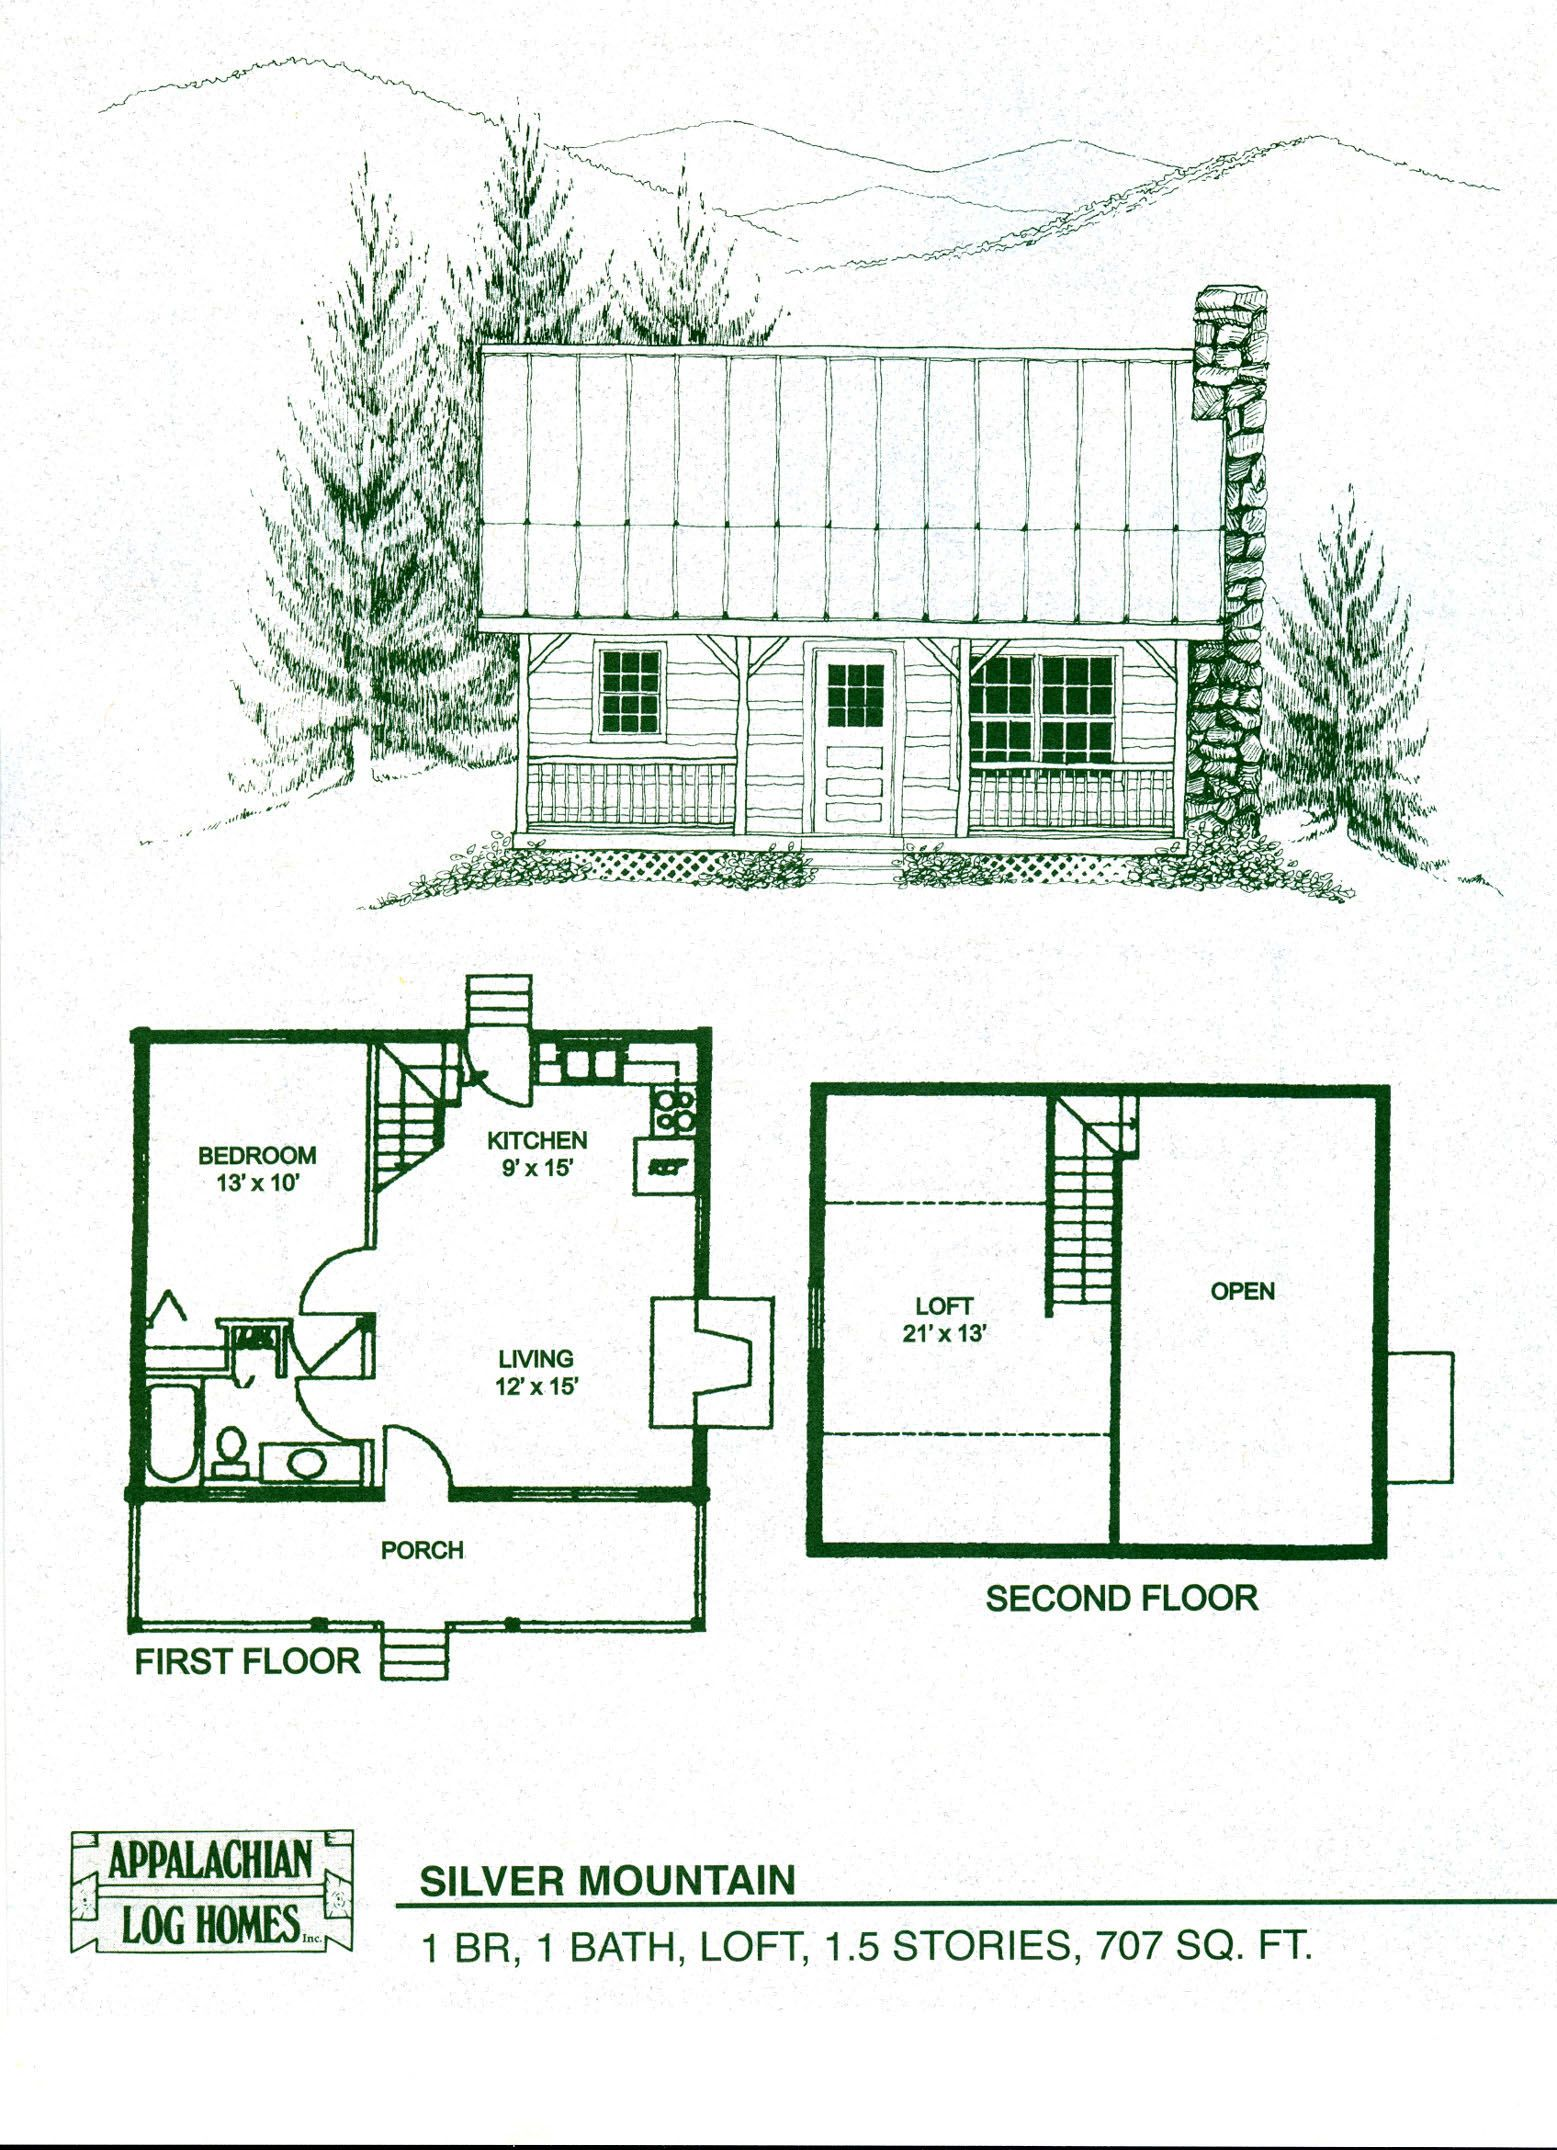 small cabin with loft floorplans photos of the small on best tiny house plan design ideas id=21466